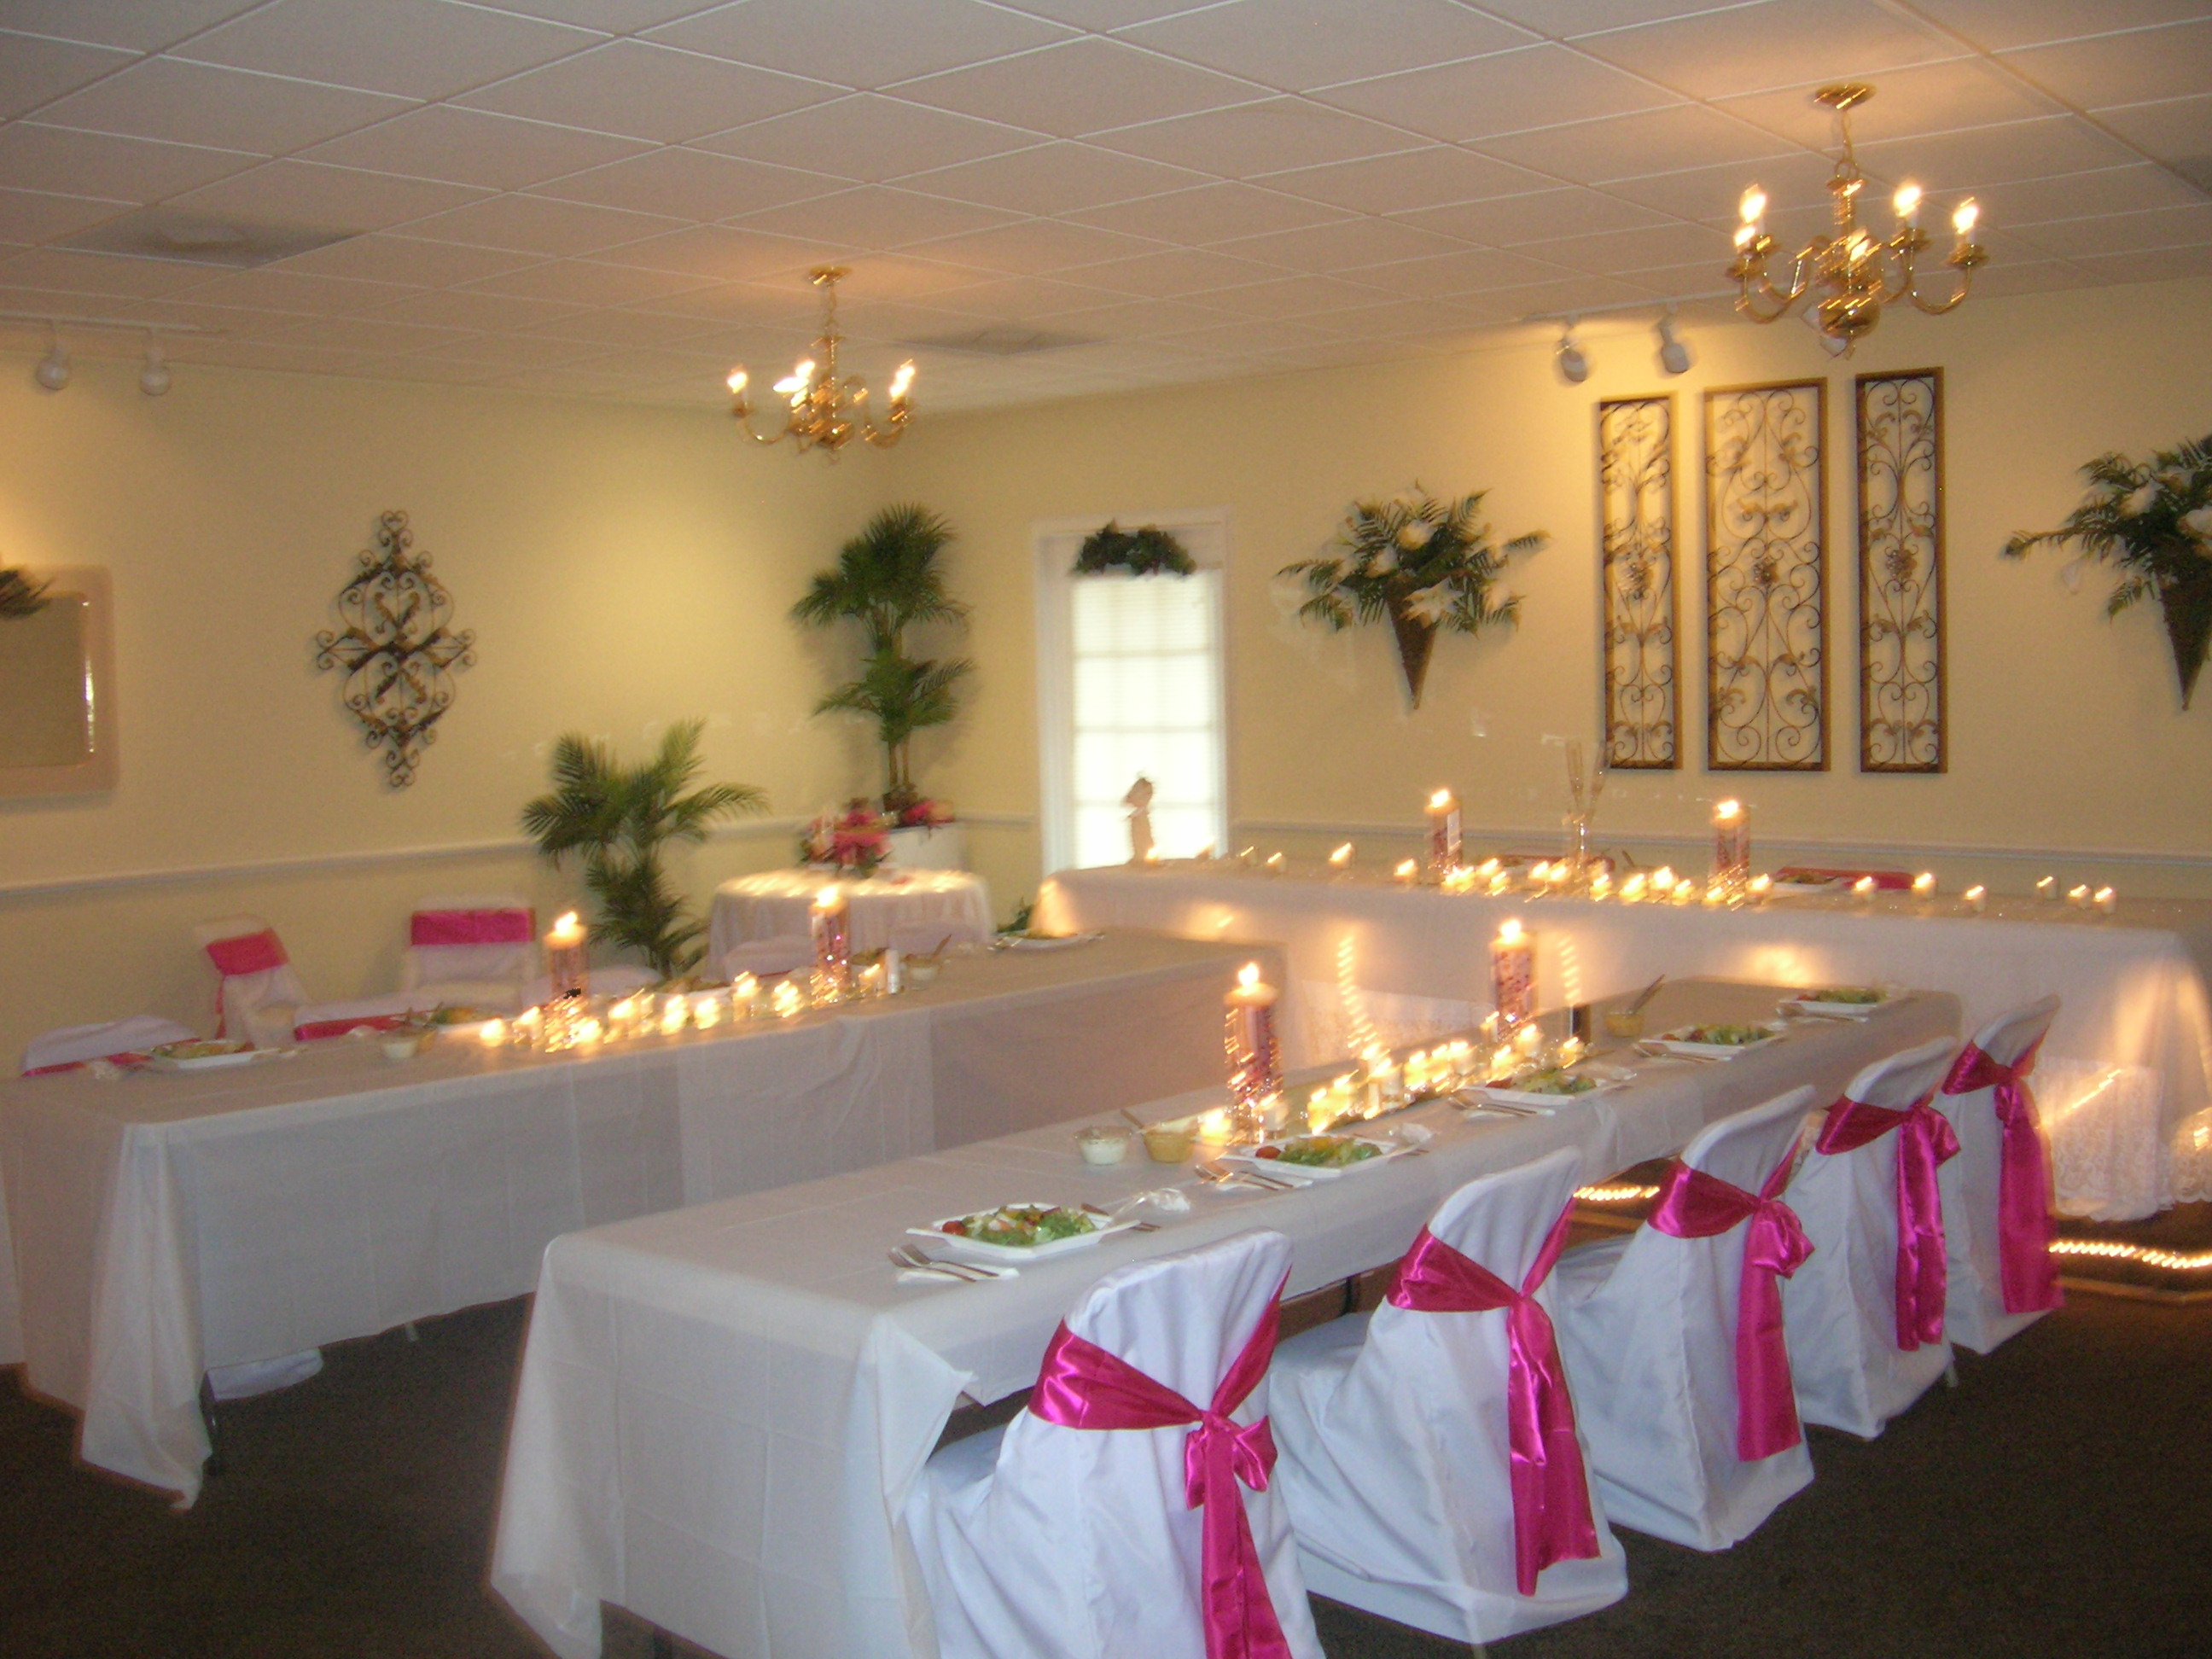 Myrtle Beach Wedding Catering,DJ,Receptions,Cakes,Awesome Party ...